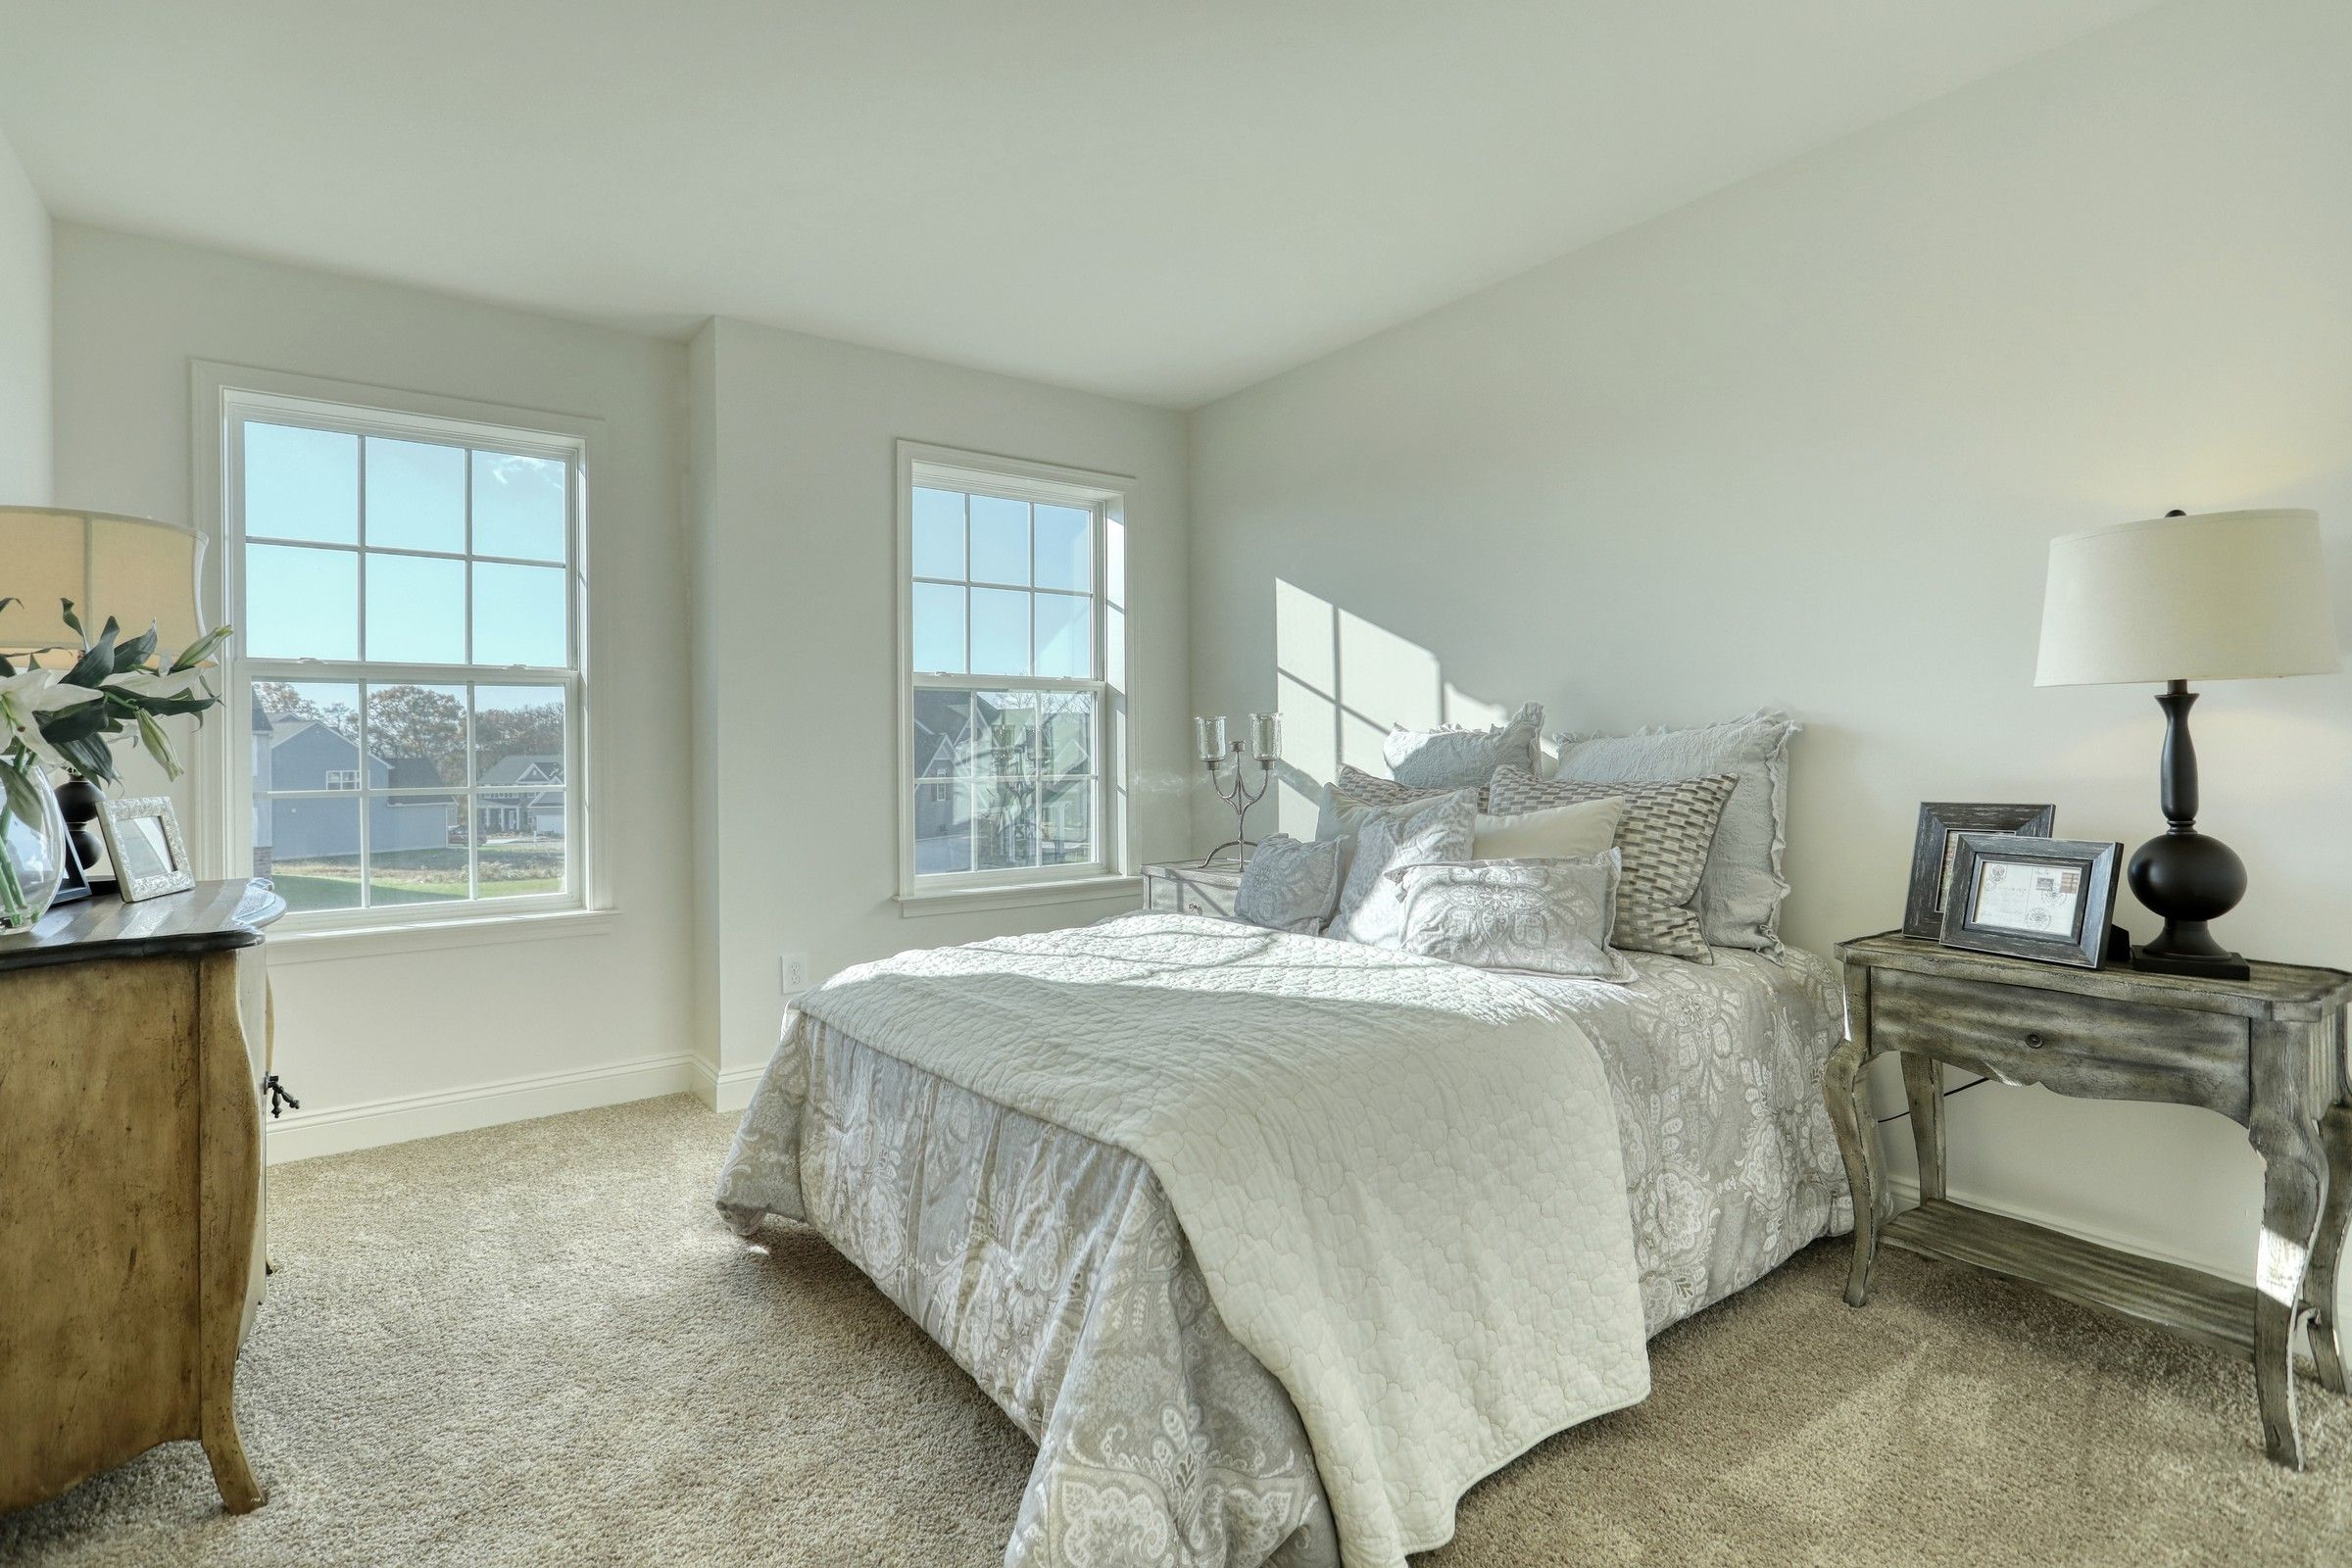 Bedroom featured in the Parker Bordeaux By Keystone Custom Homes in Lancaster, PA